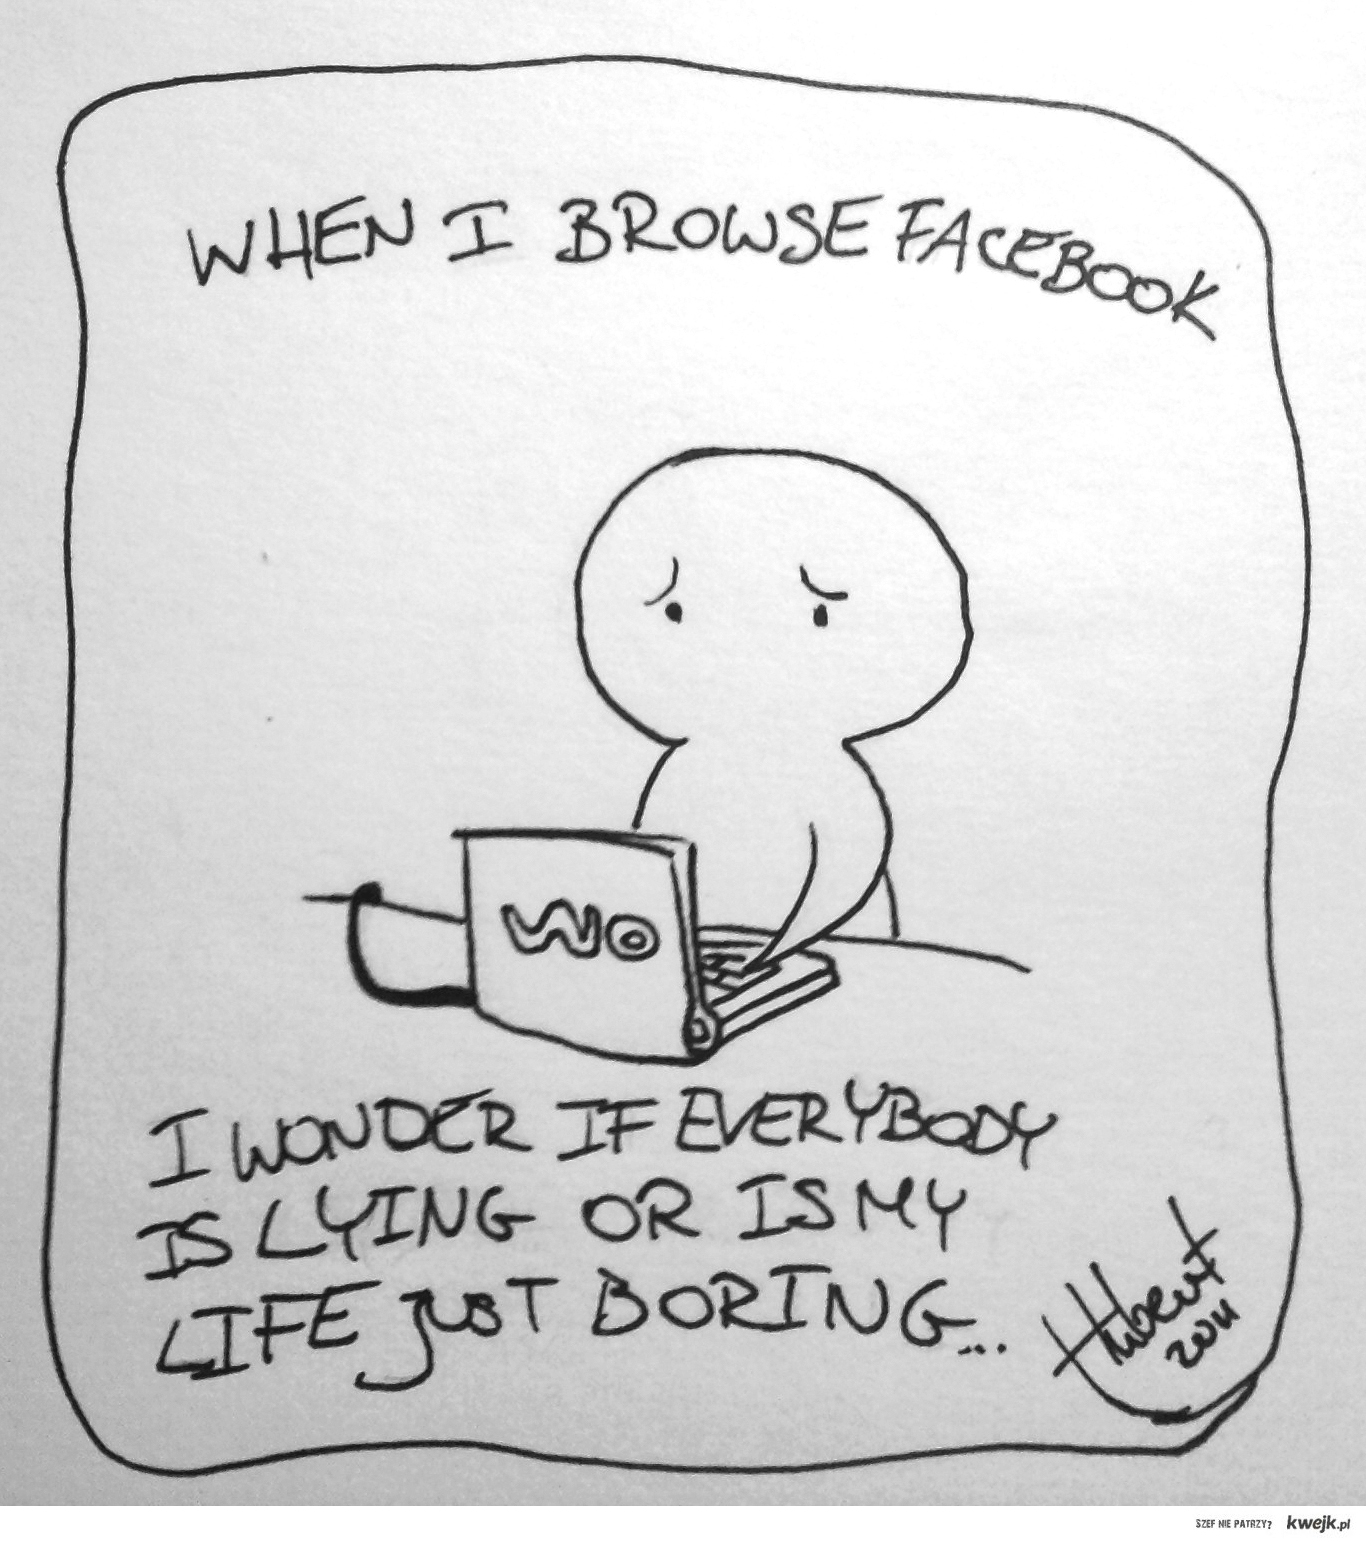 Boring life outside of facebook